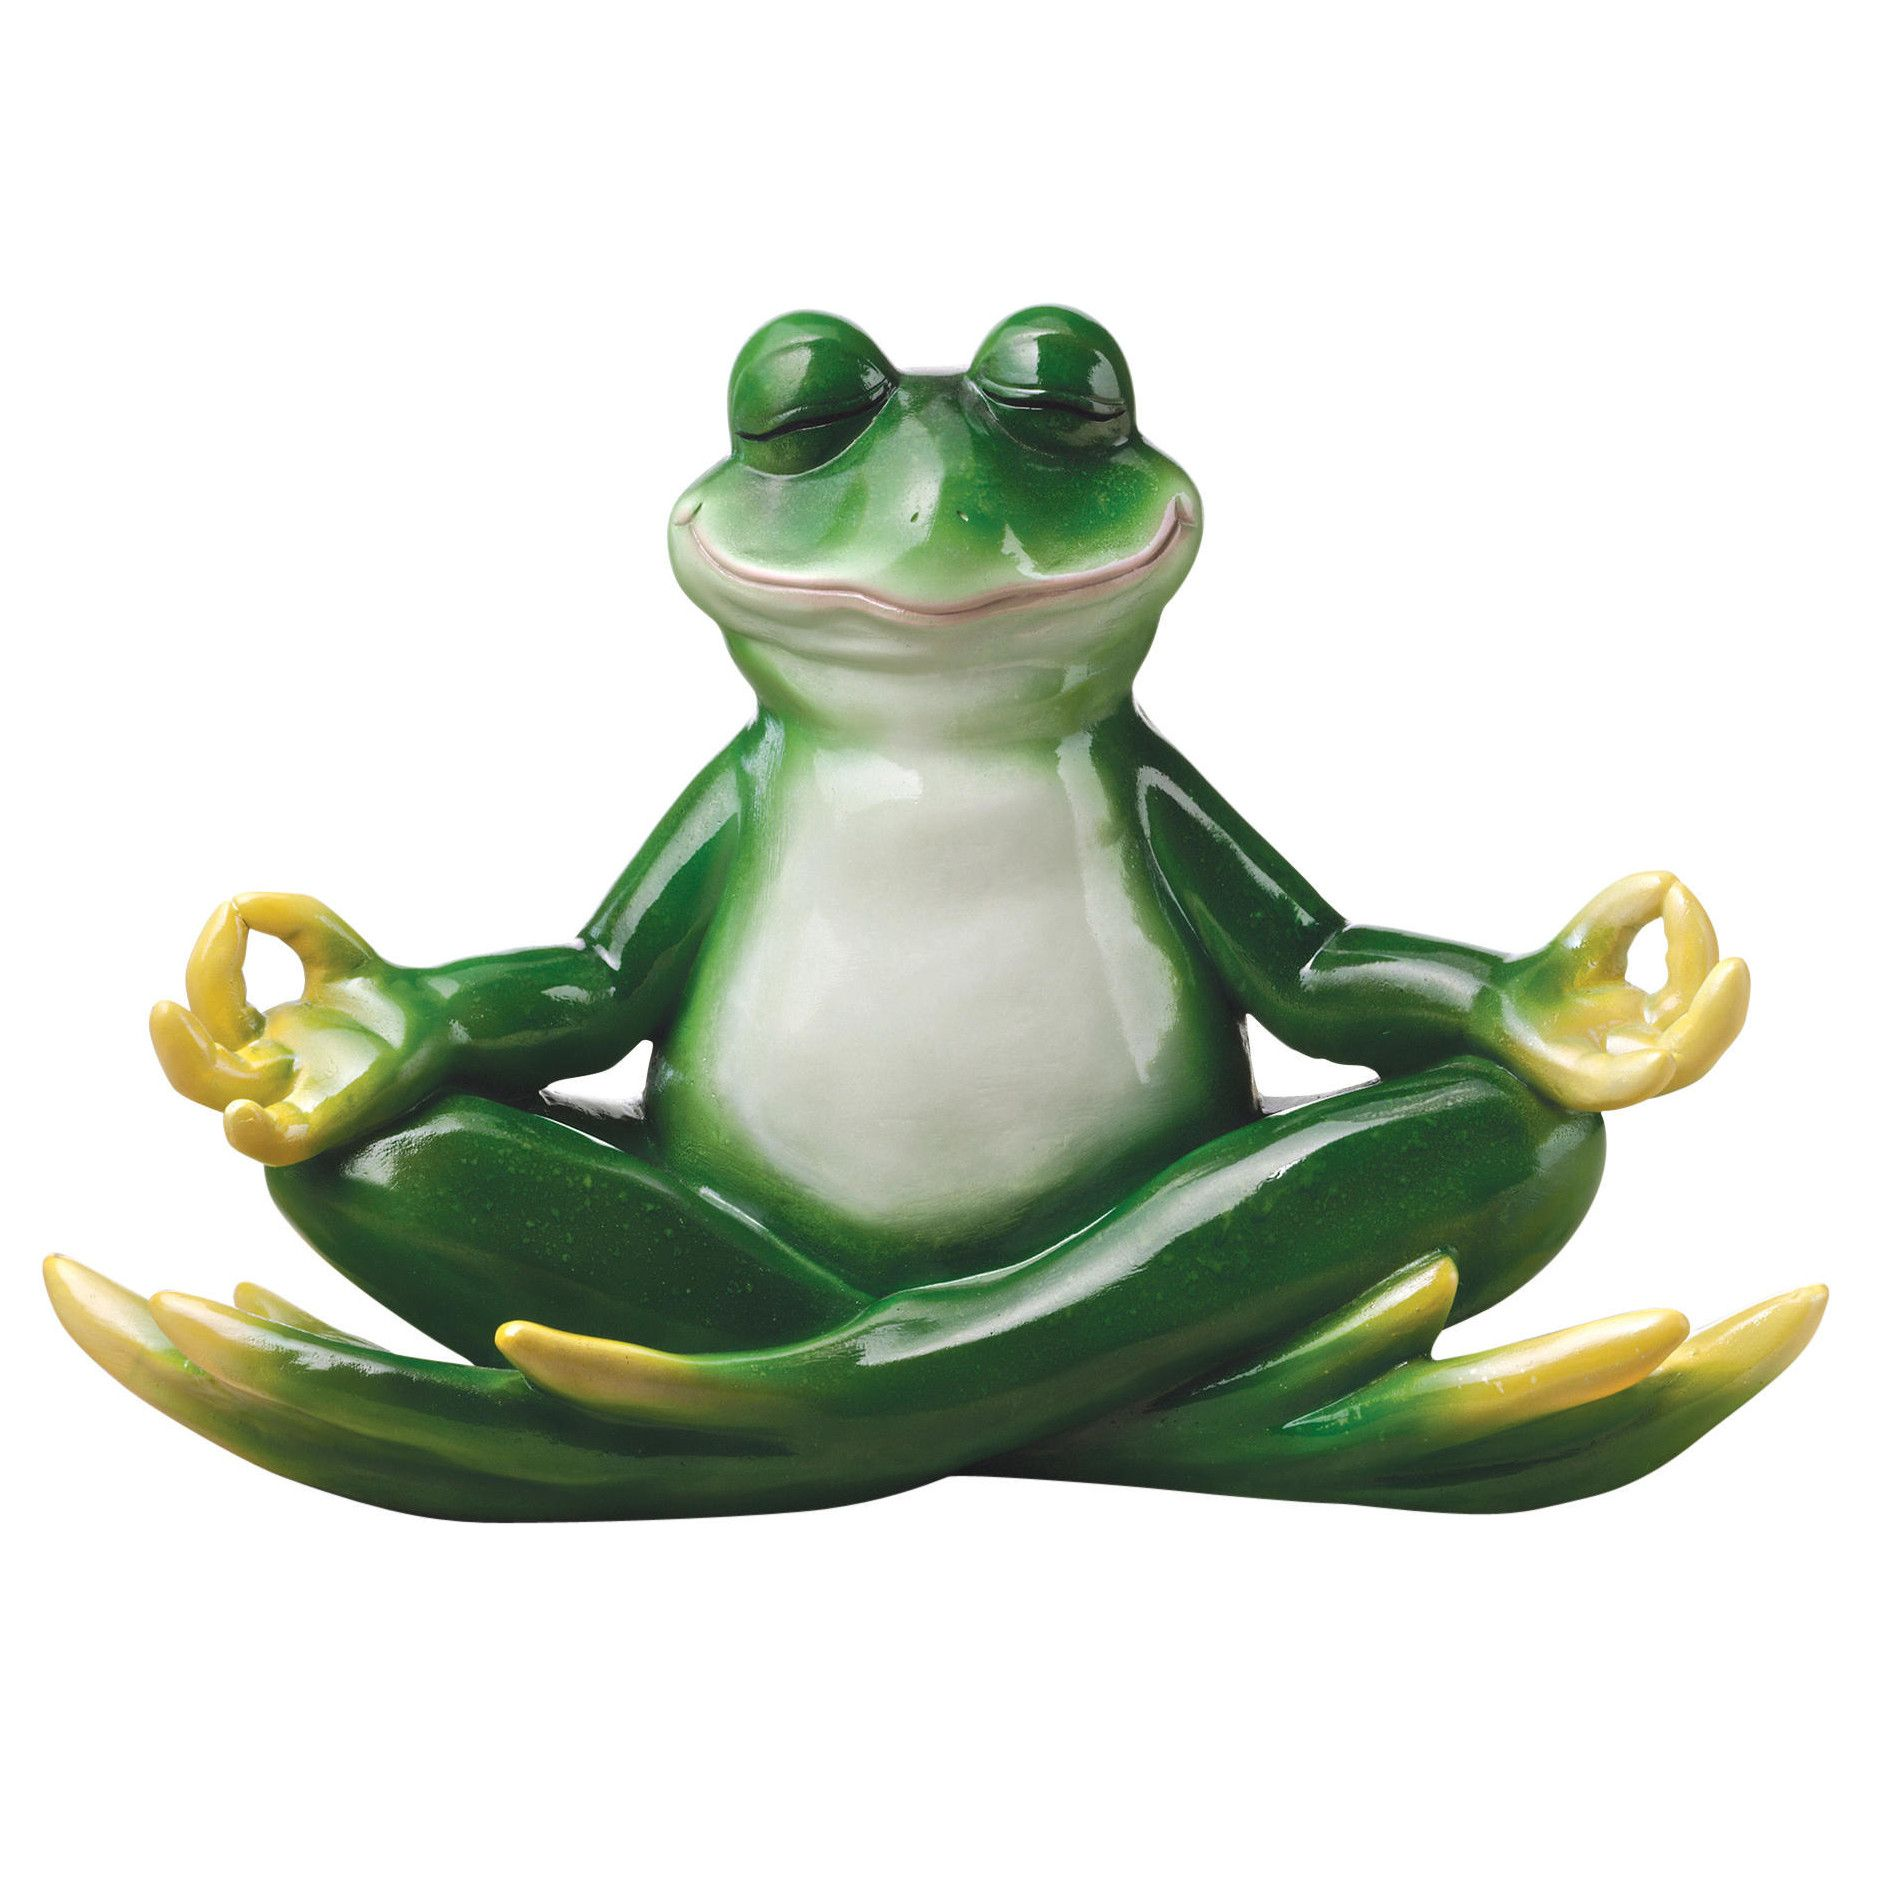 Meditating Frog Indoor Outdoor Statue Frog Statues Outdoor Statues Ceramic Frogs